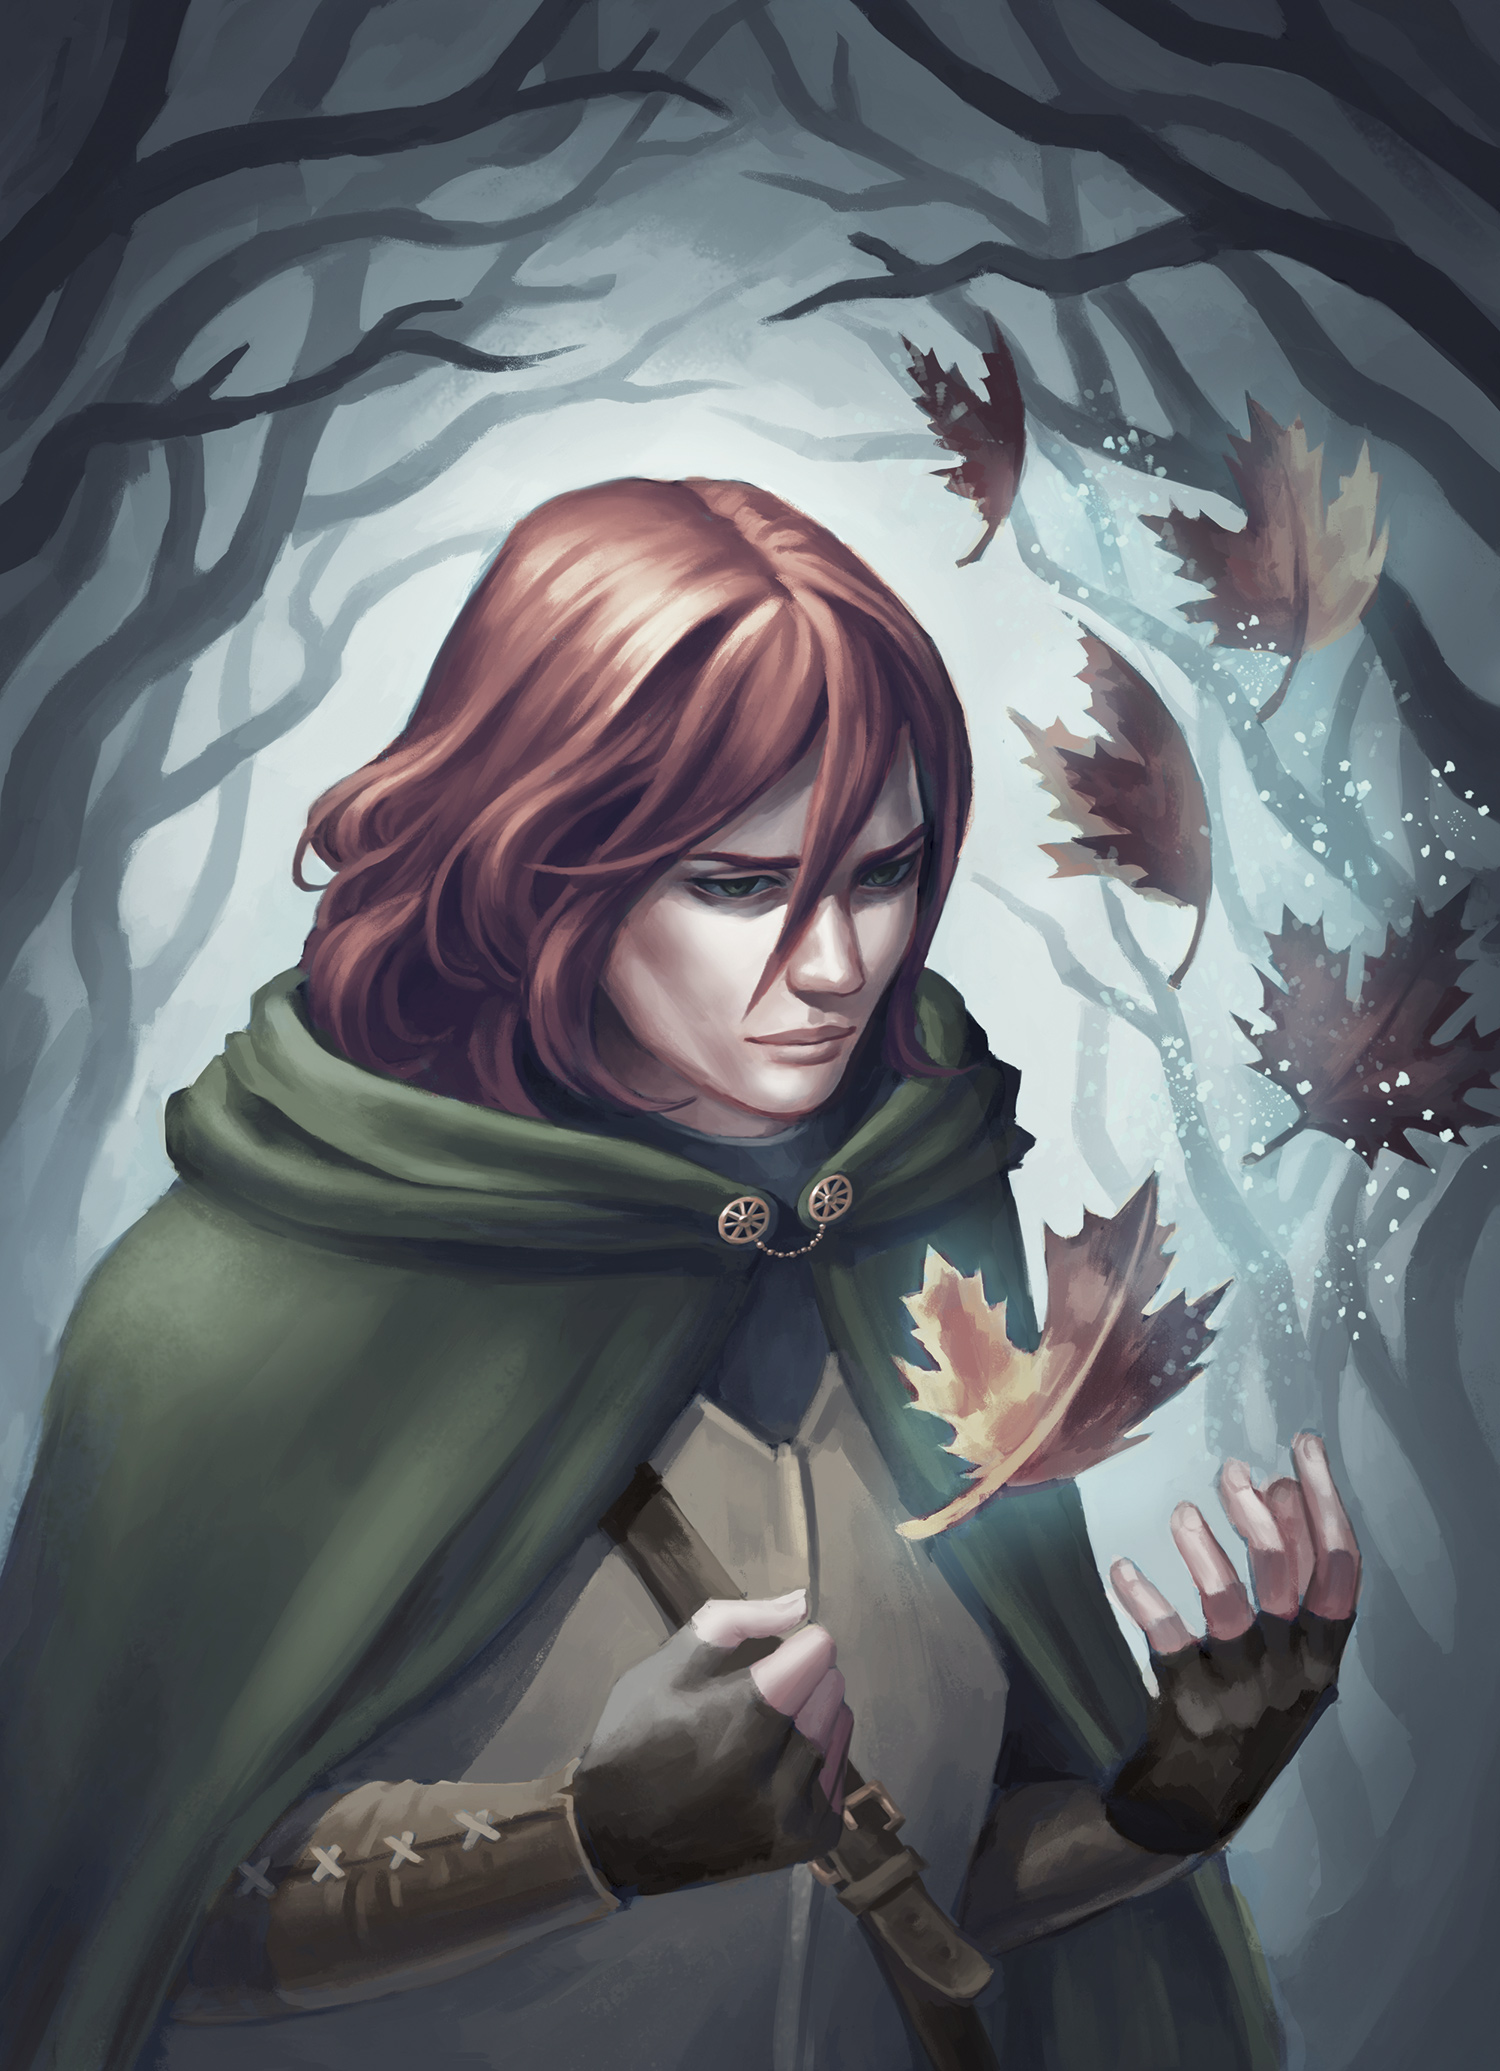 Kvothe from the Kingkiller Chronicle book series by Patrick Rothfuss. Digital painting by Abbey Johnson (IDEA16)